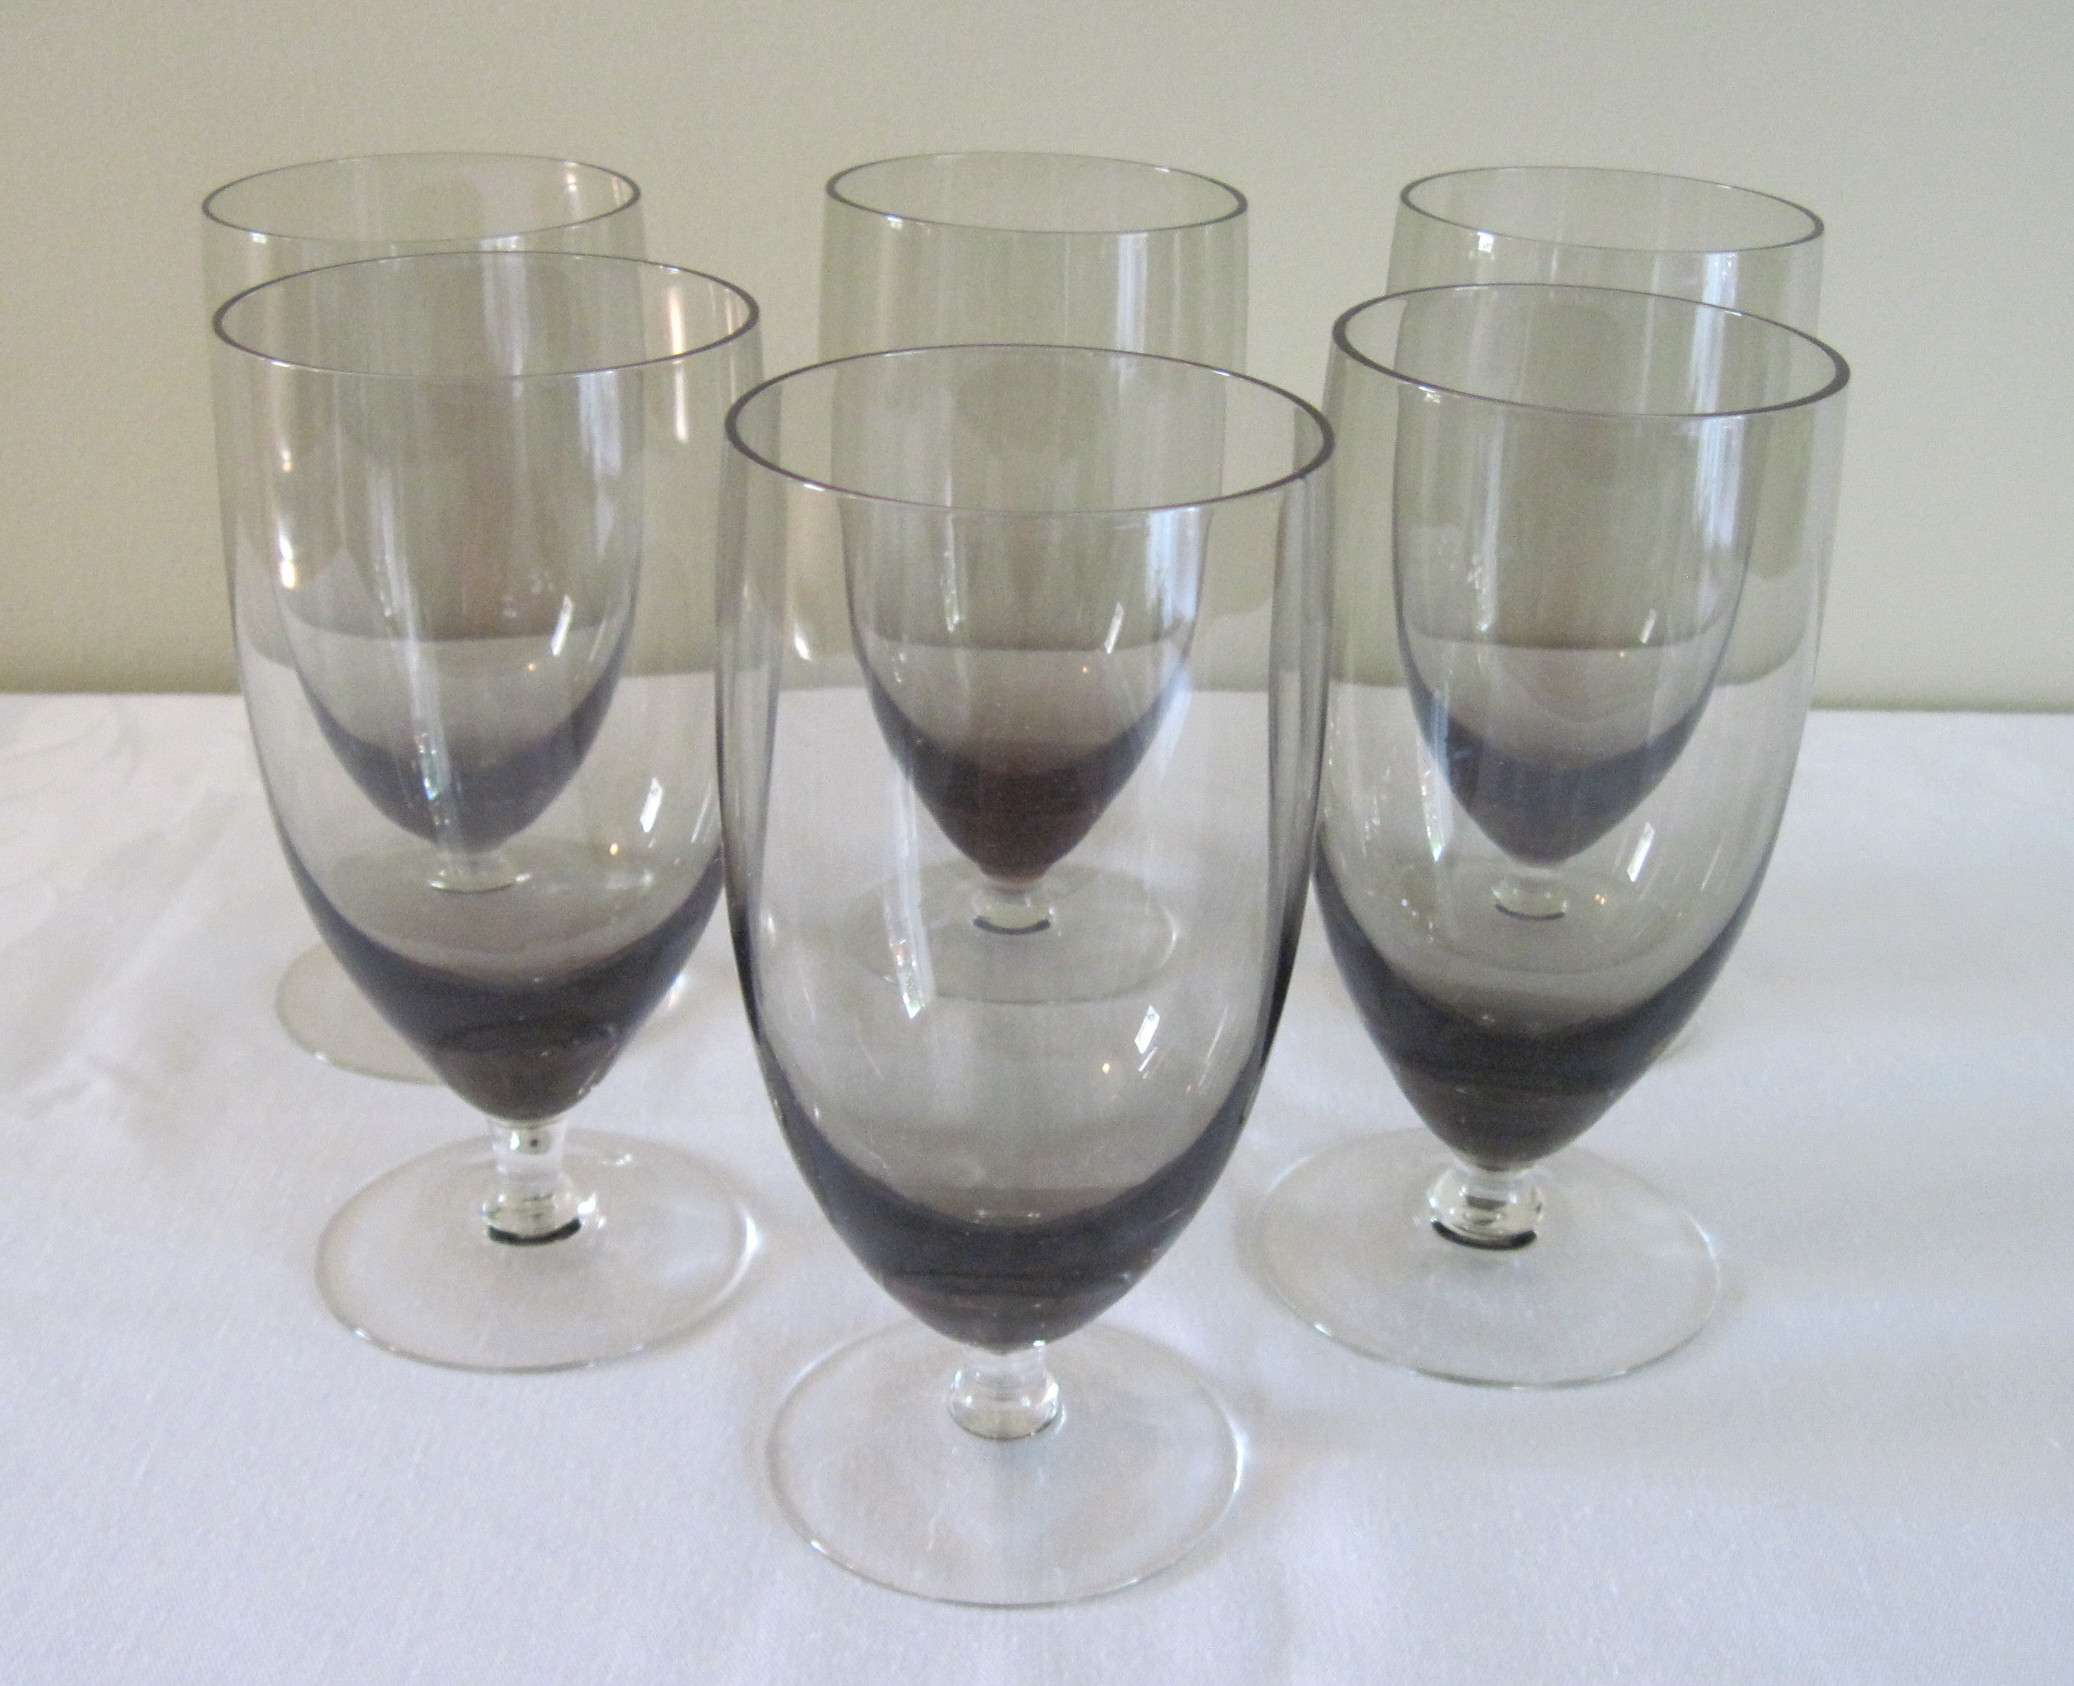 set of 6 large smoked glass water goblets these look mid century to me smoked glass was very popular back in the 60u0027s and 70u0027s hard to find these days - Water Goblets